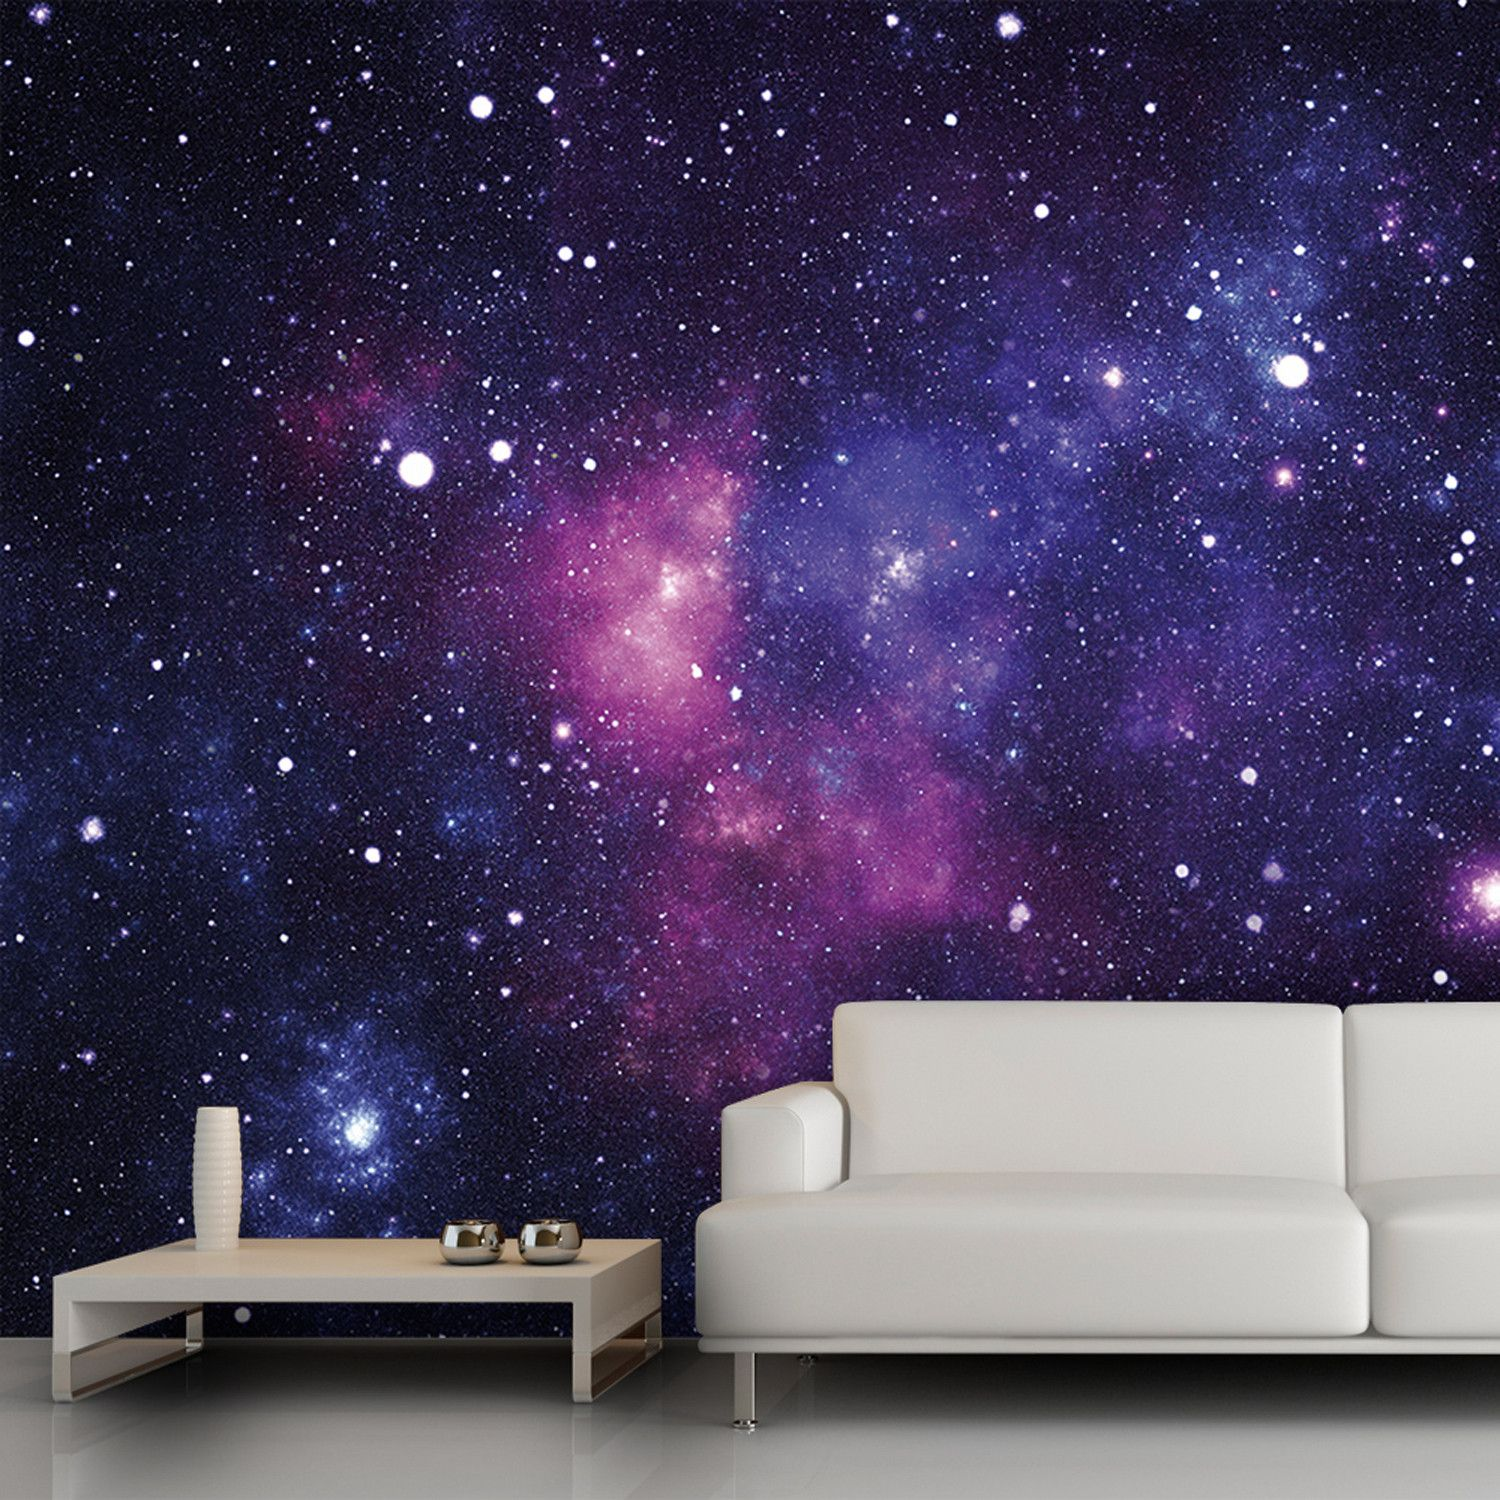 Galaxy Galaxy bedroom, Space themed nursery, Galaxy room